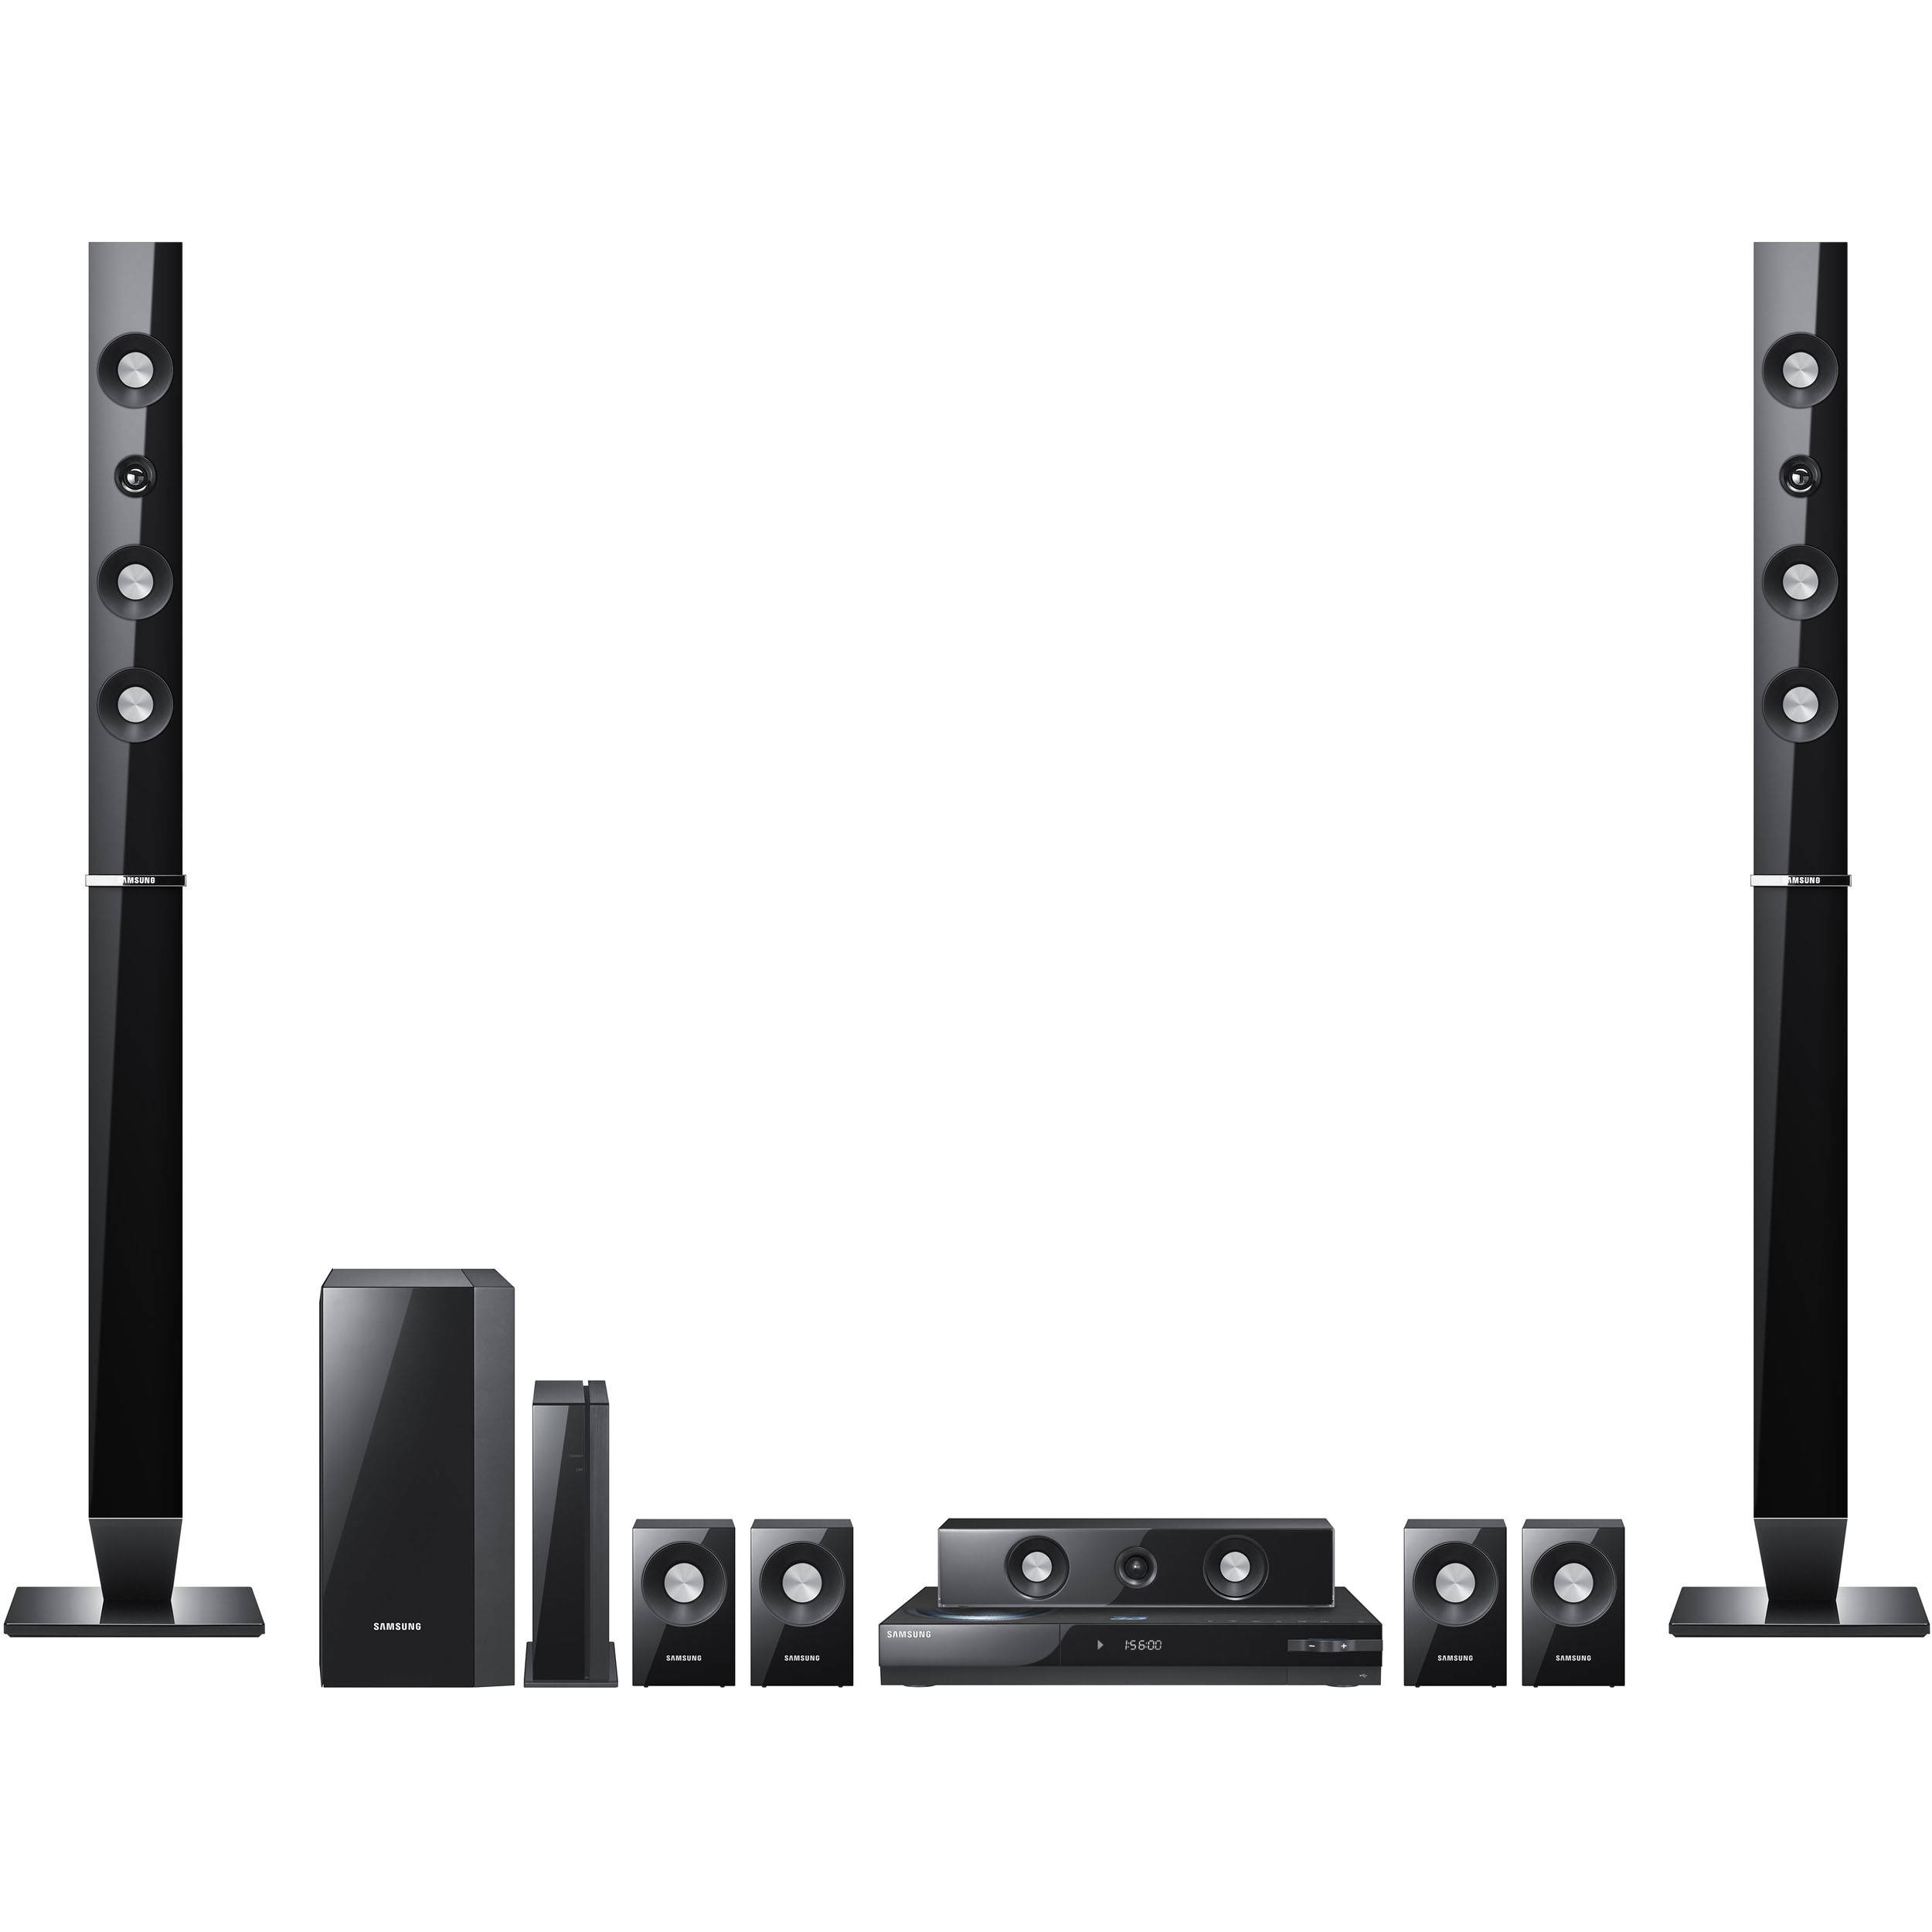 Samsung ht c6930w 7 1 channel blu ray home theater ht c6930w b amp h